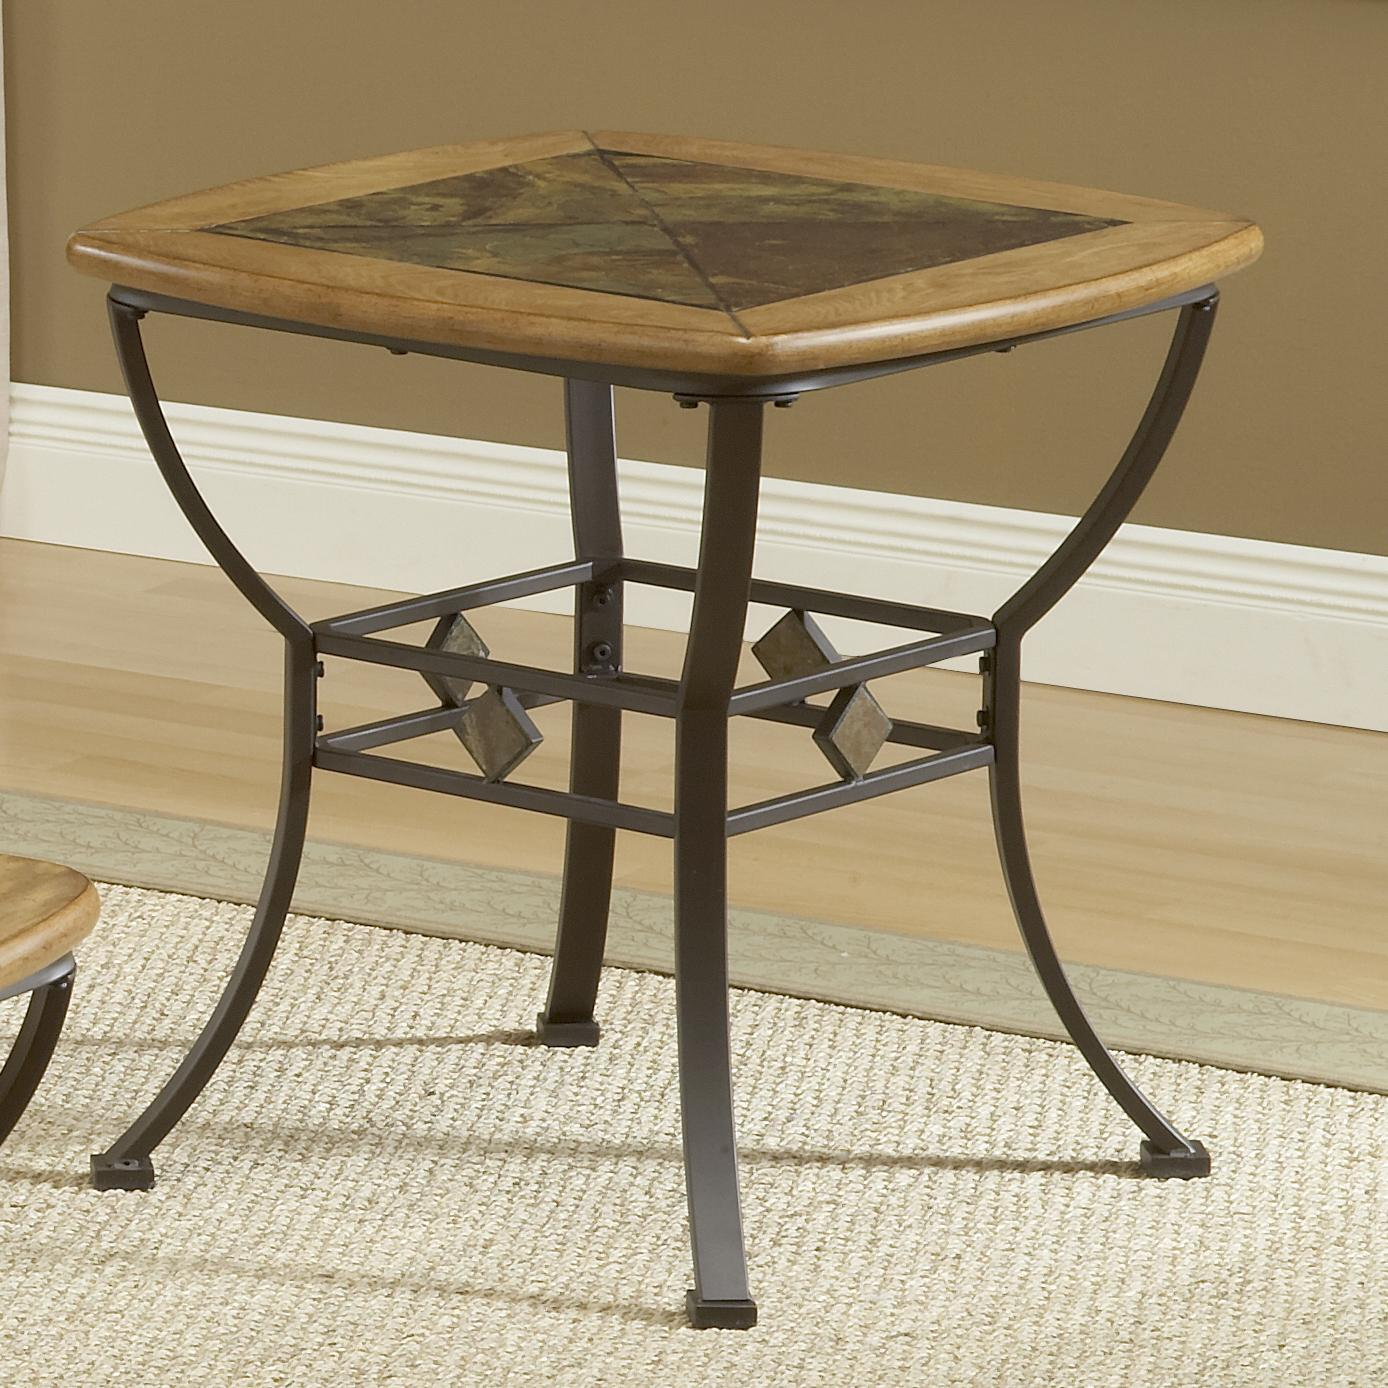 Beau Slate End Tables With Unique Bases Design